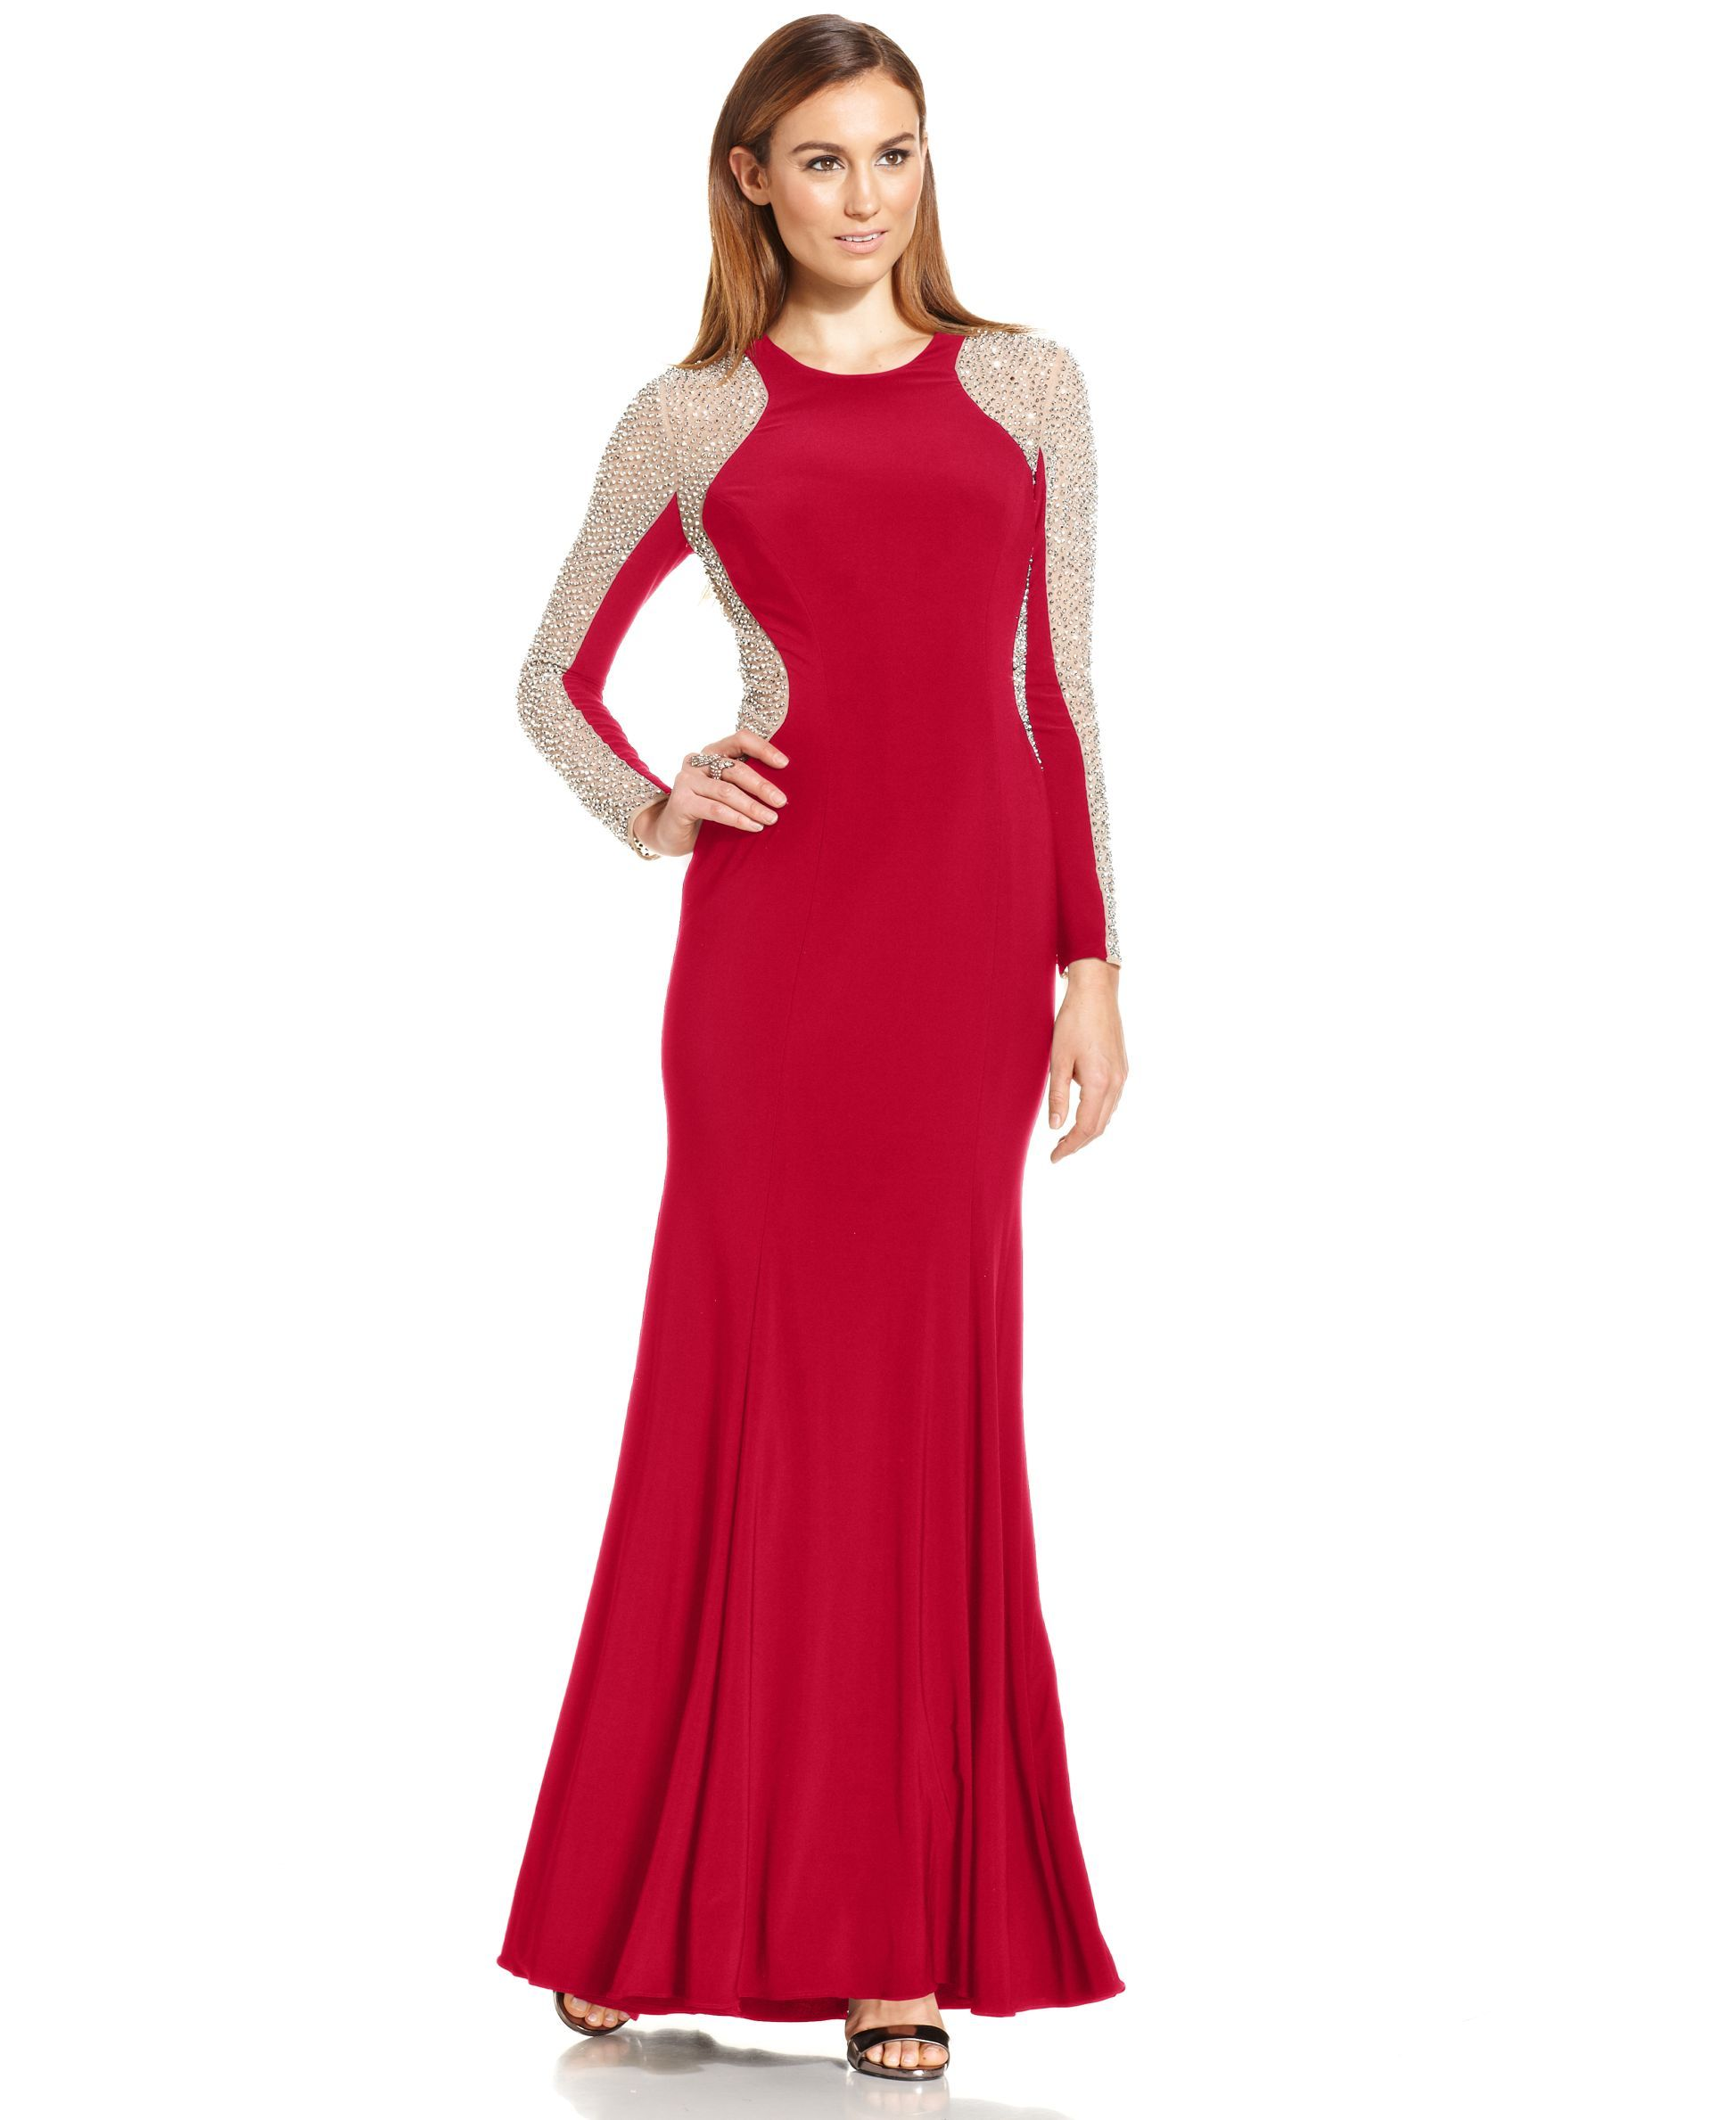 Studded Long Red Prom Dresses